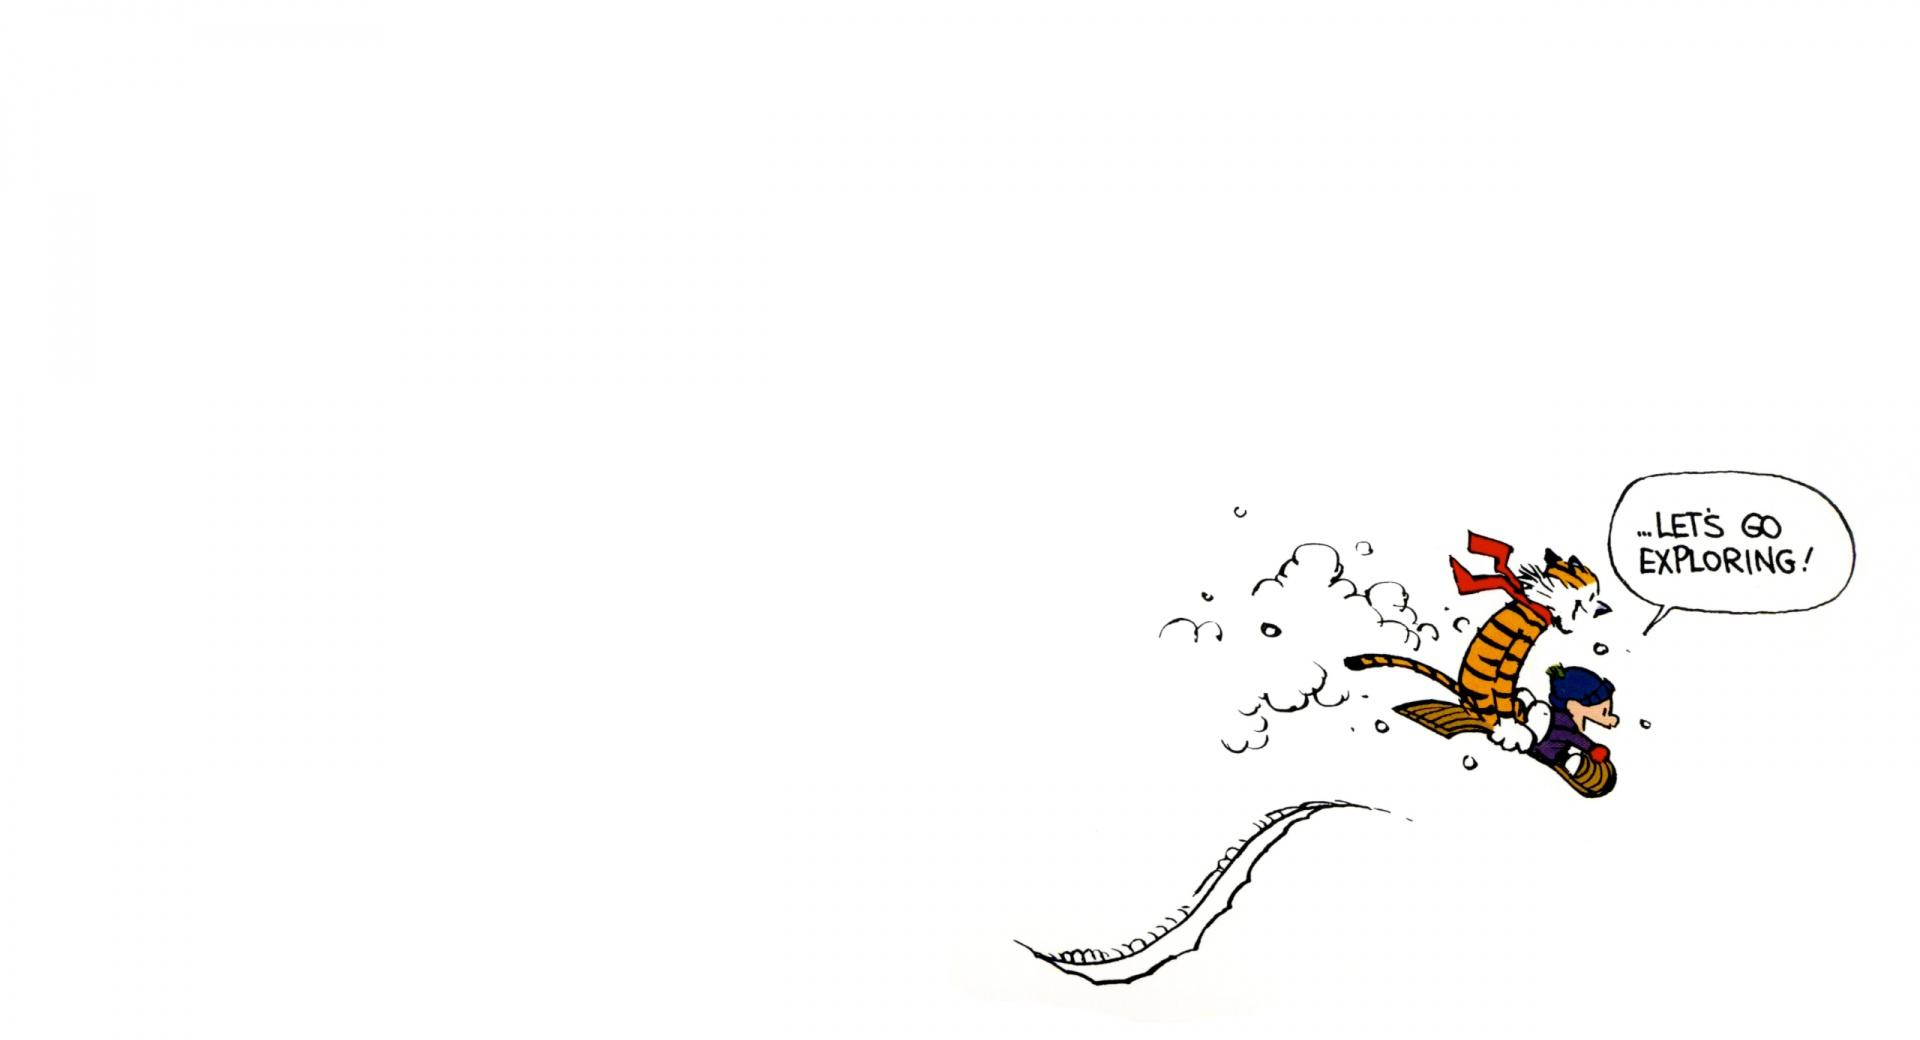 Calvin And Hobbes Exploring wallpapers HD quality